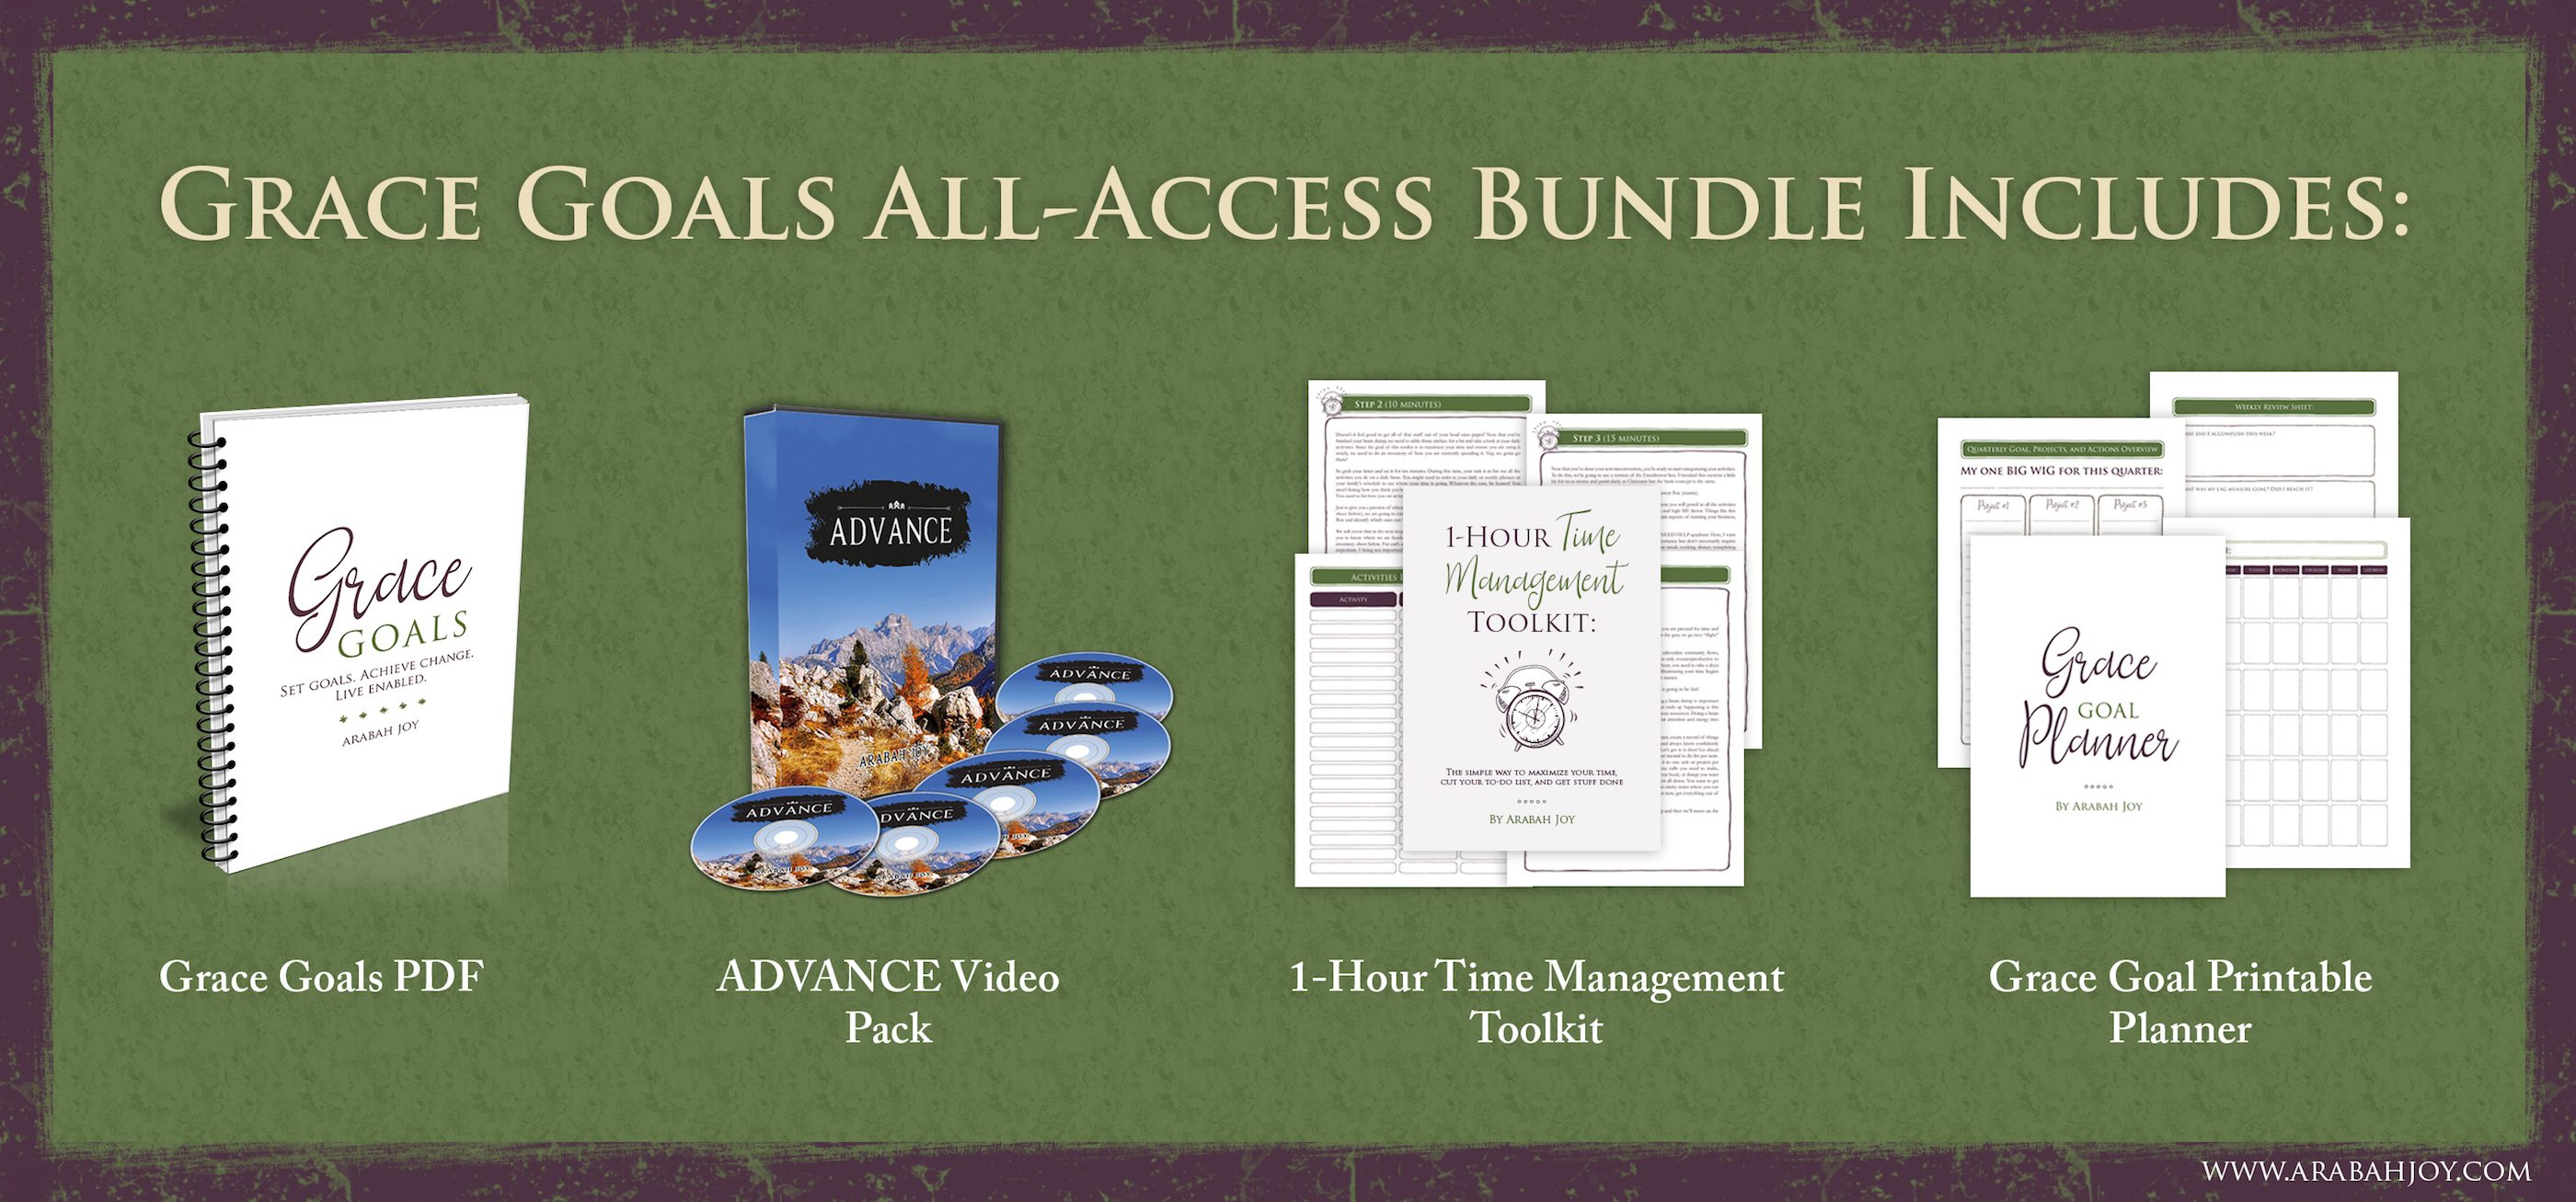 Grace Goals 2018 bundle includes videos, PDF, Time Management Toolkit, and a Goals Planner!